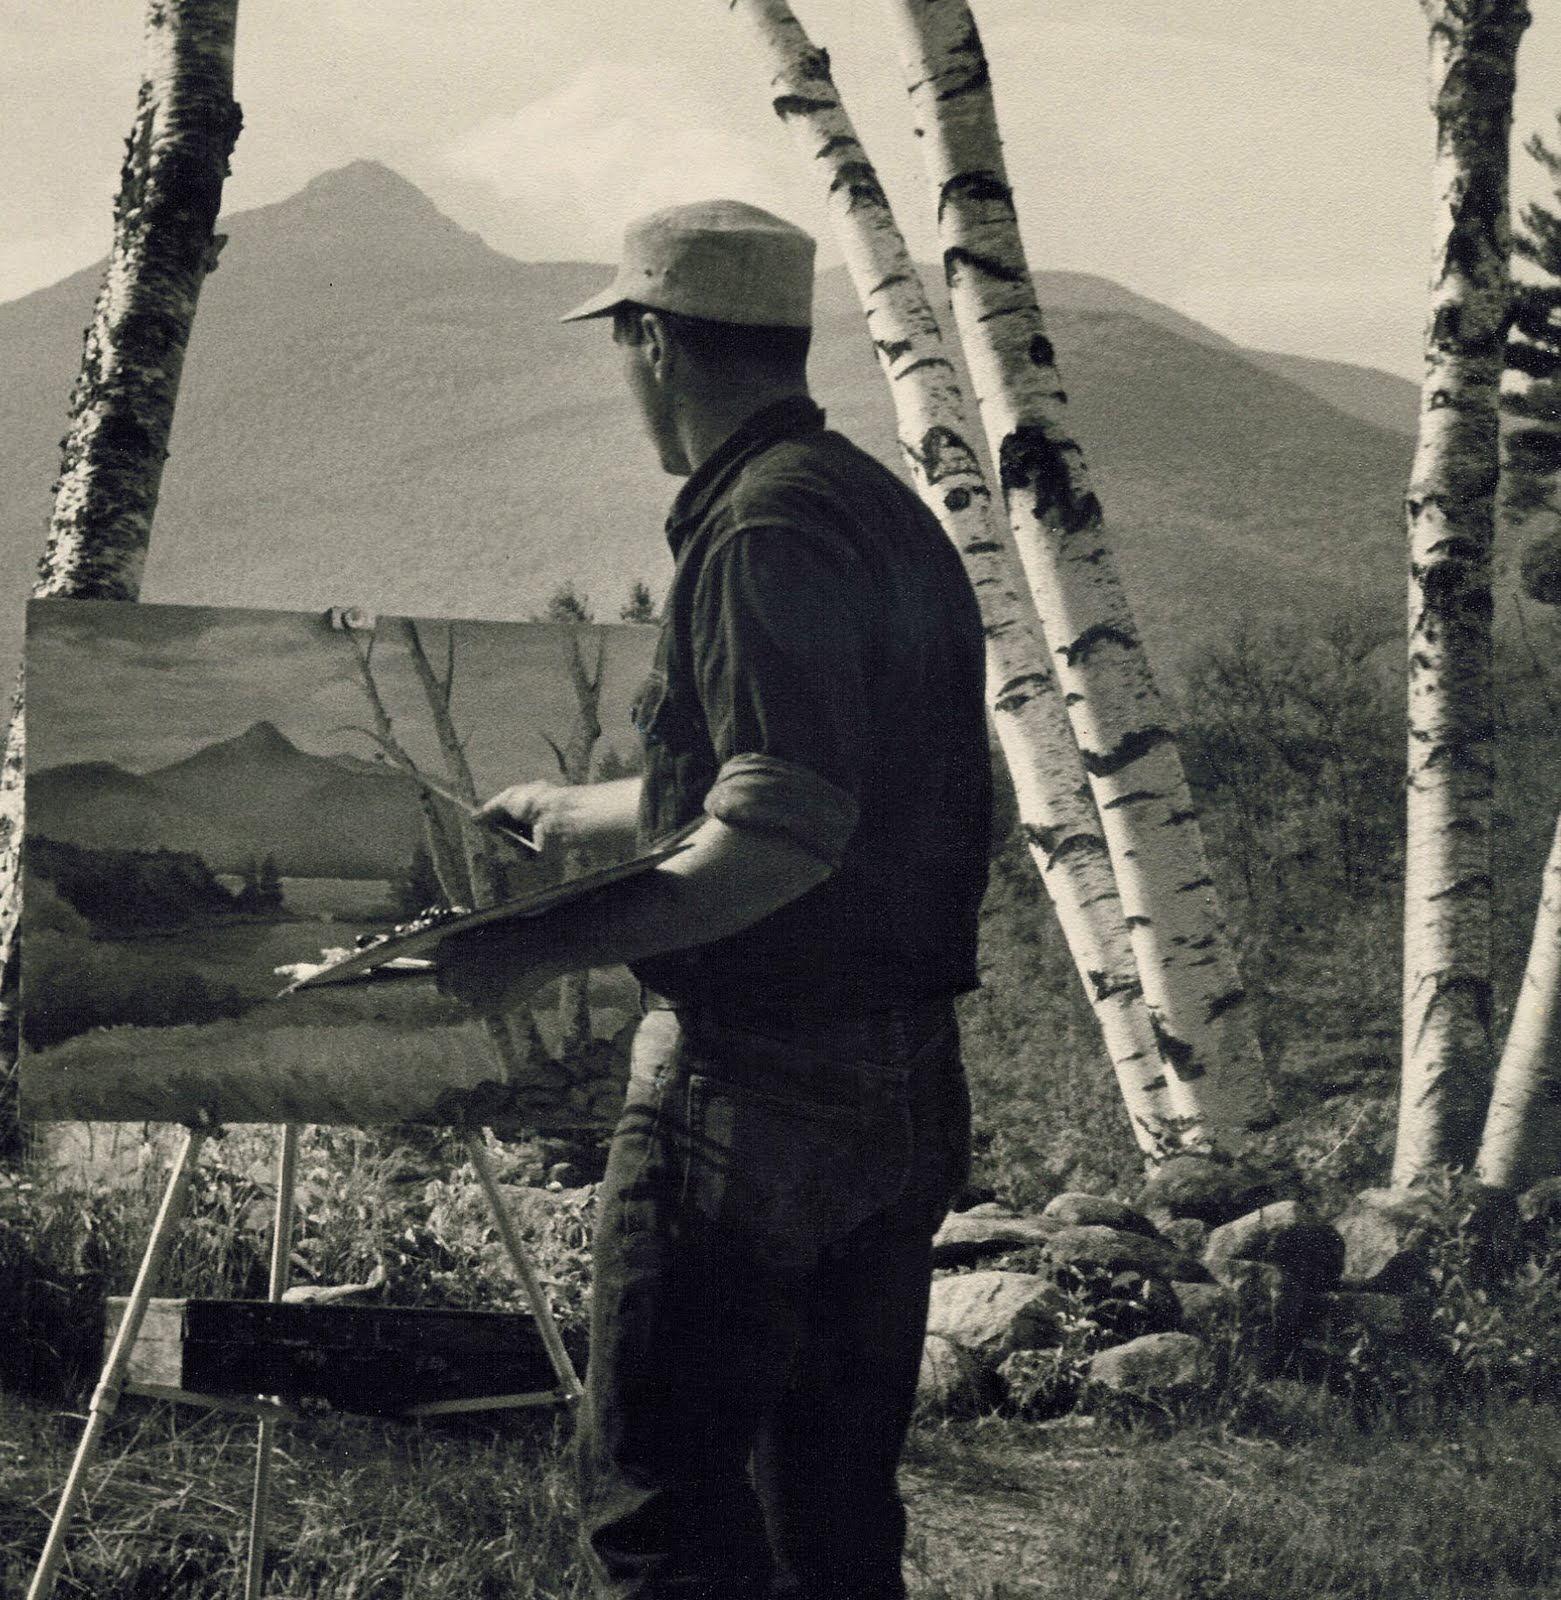 Dick Packer painting at the Basin View Lot, 1950